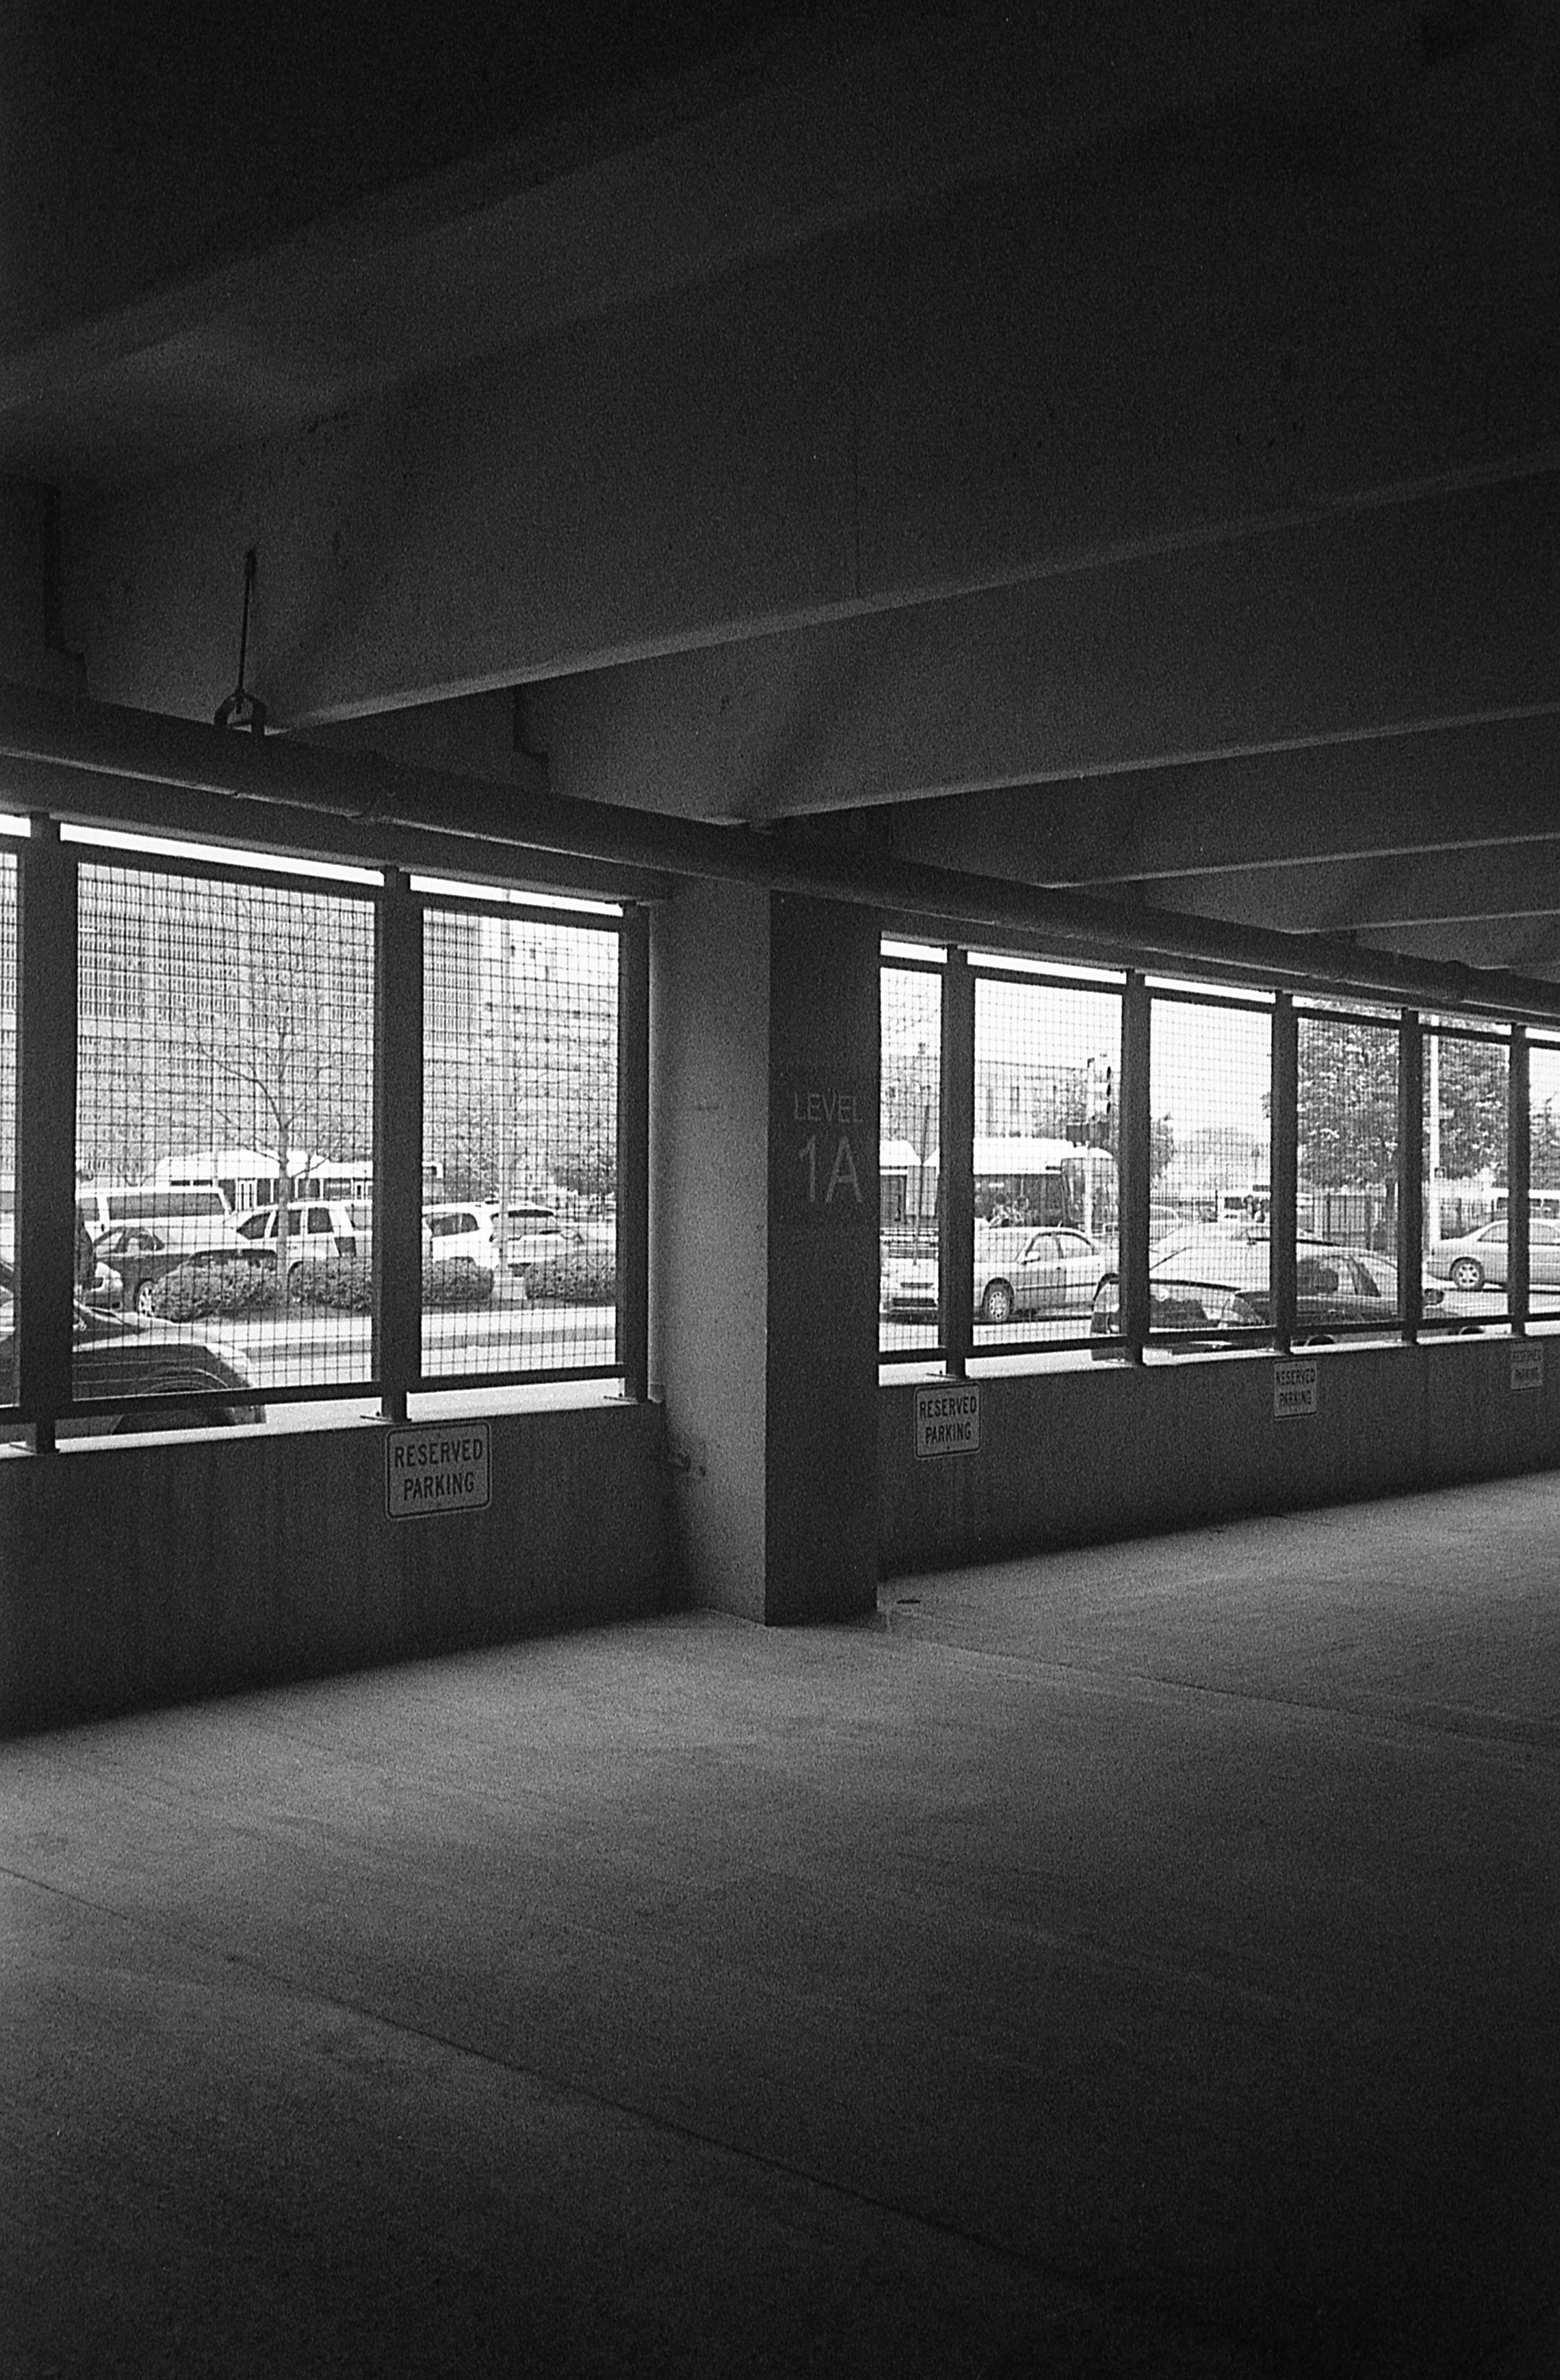 NikonL35AF Fresh Kodak Trix 400 Developed with Starbucks Veranda Blend Instant Coffee